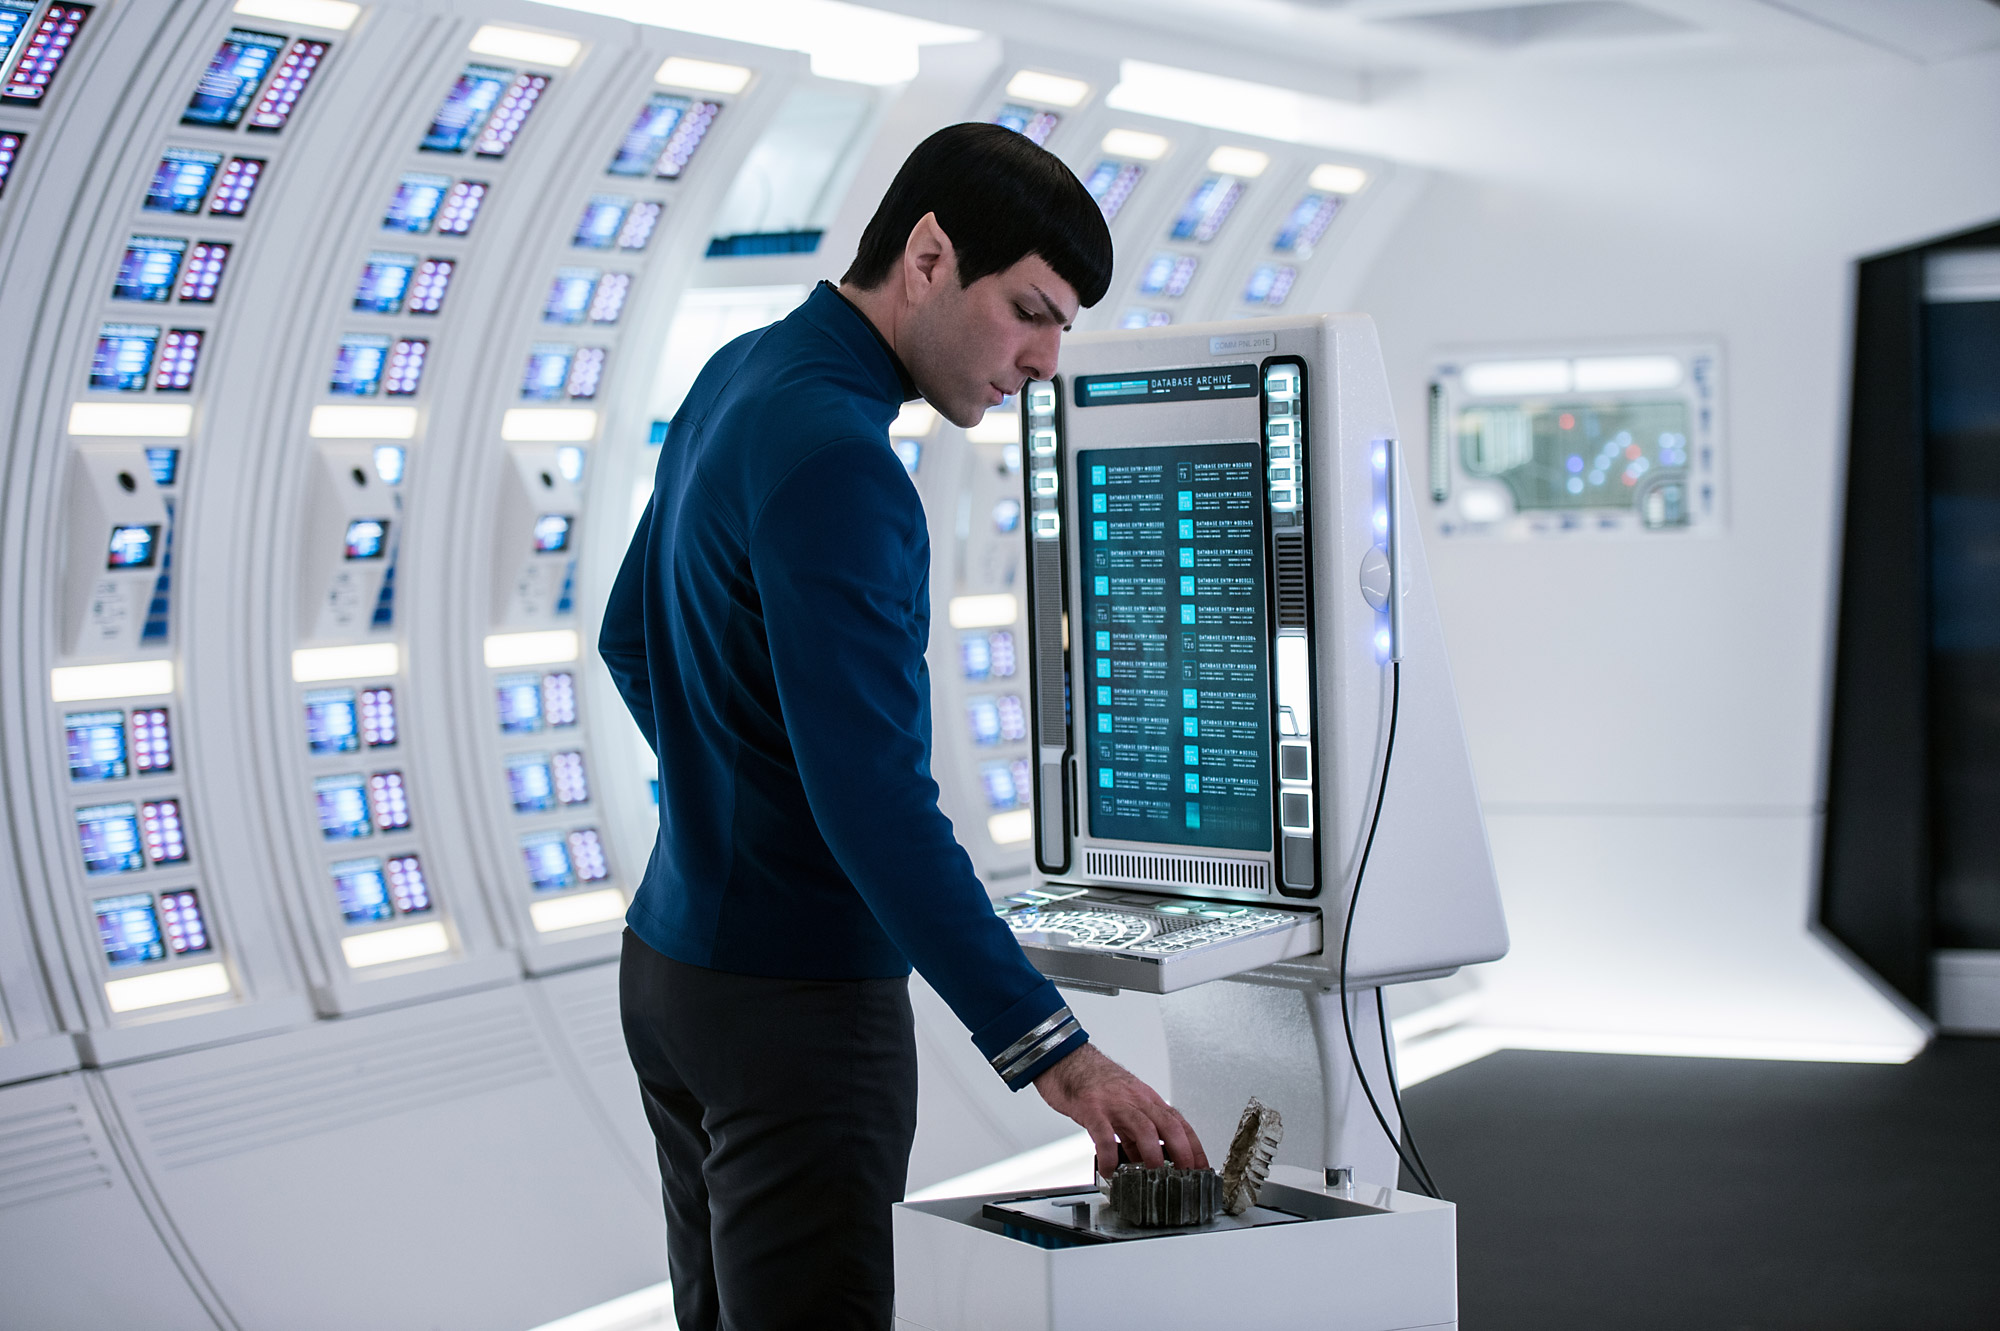 spock-science-lab.jpg